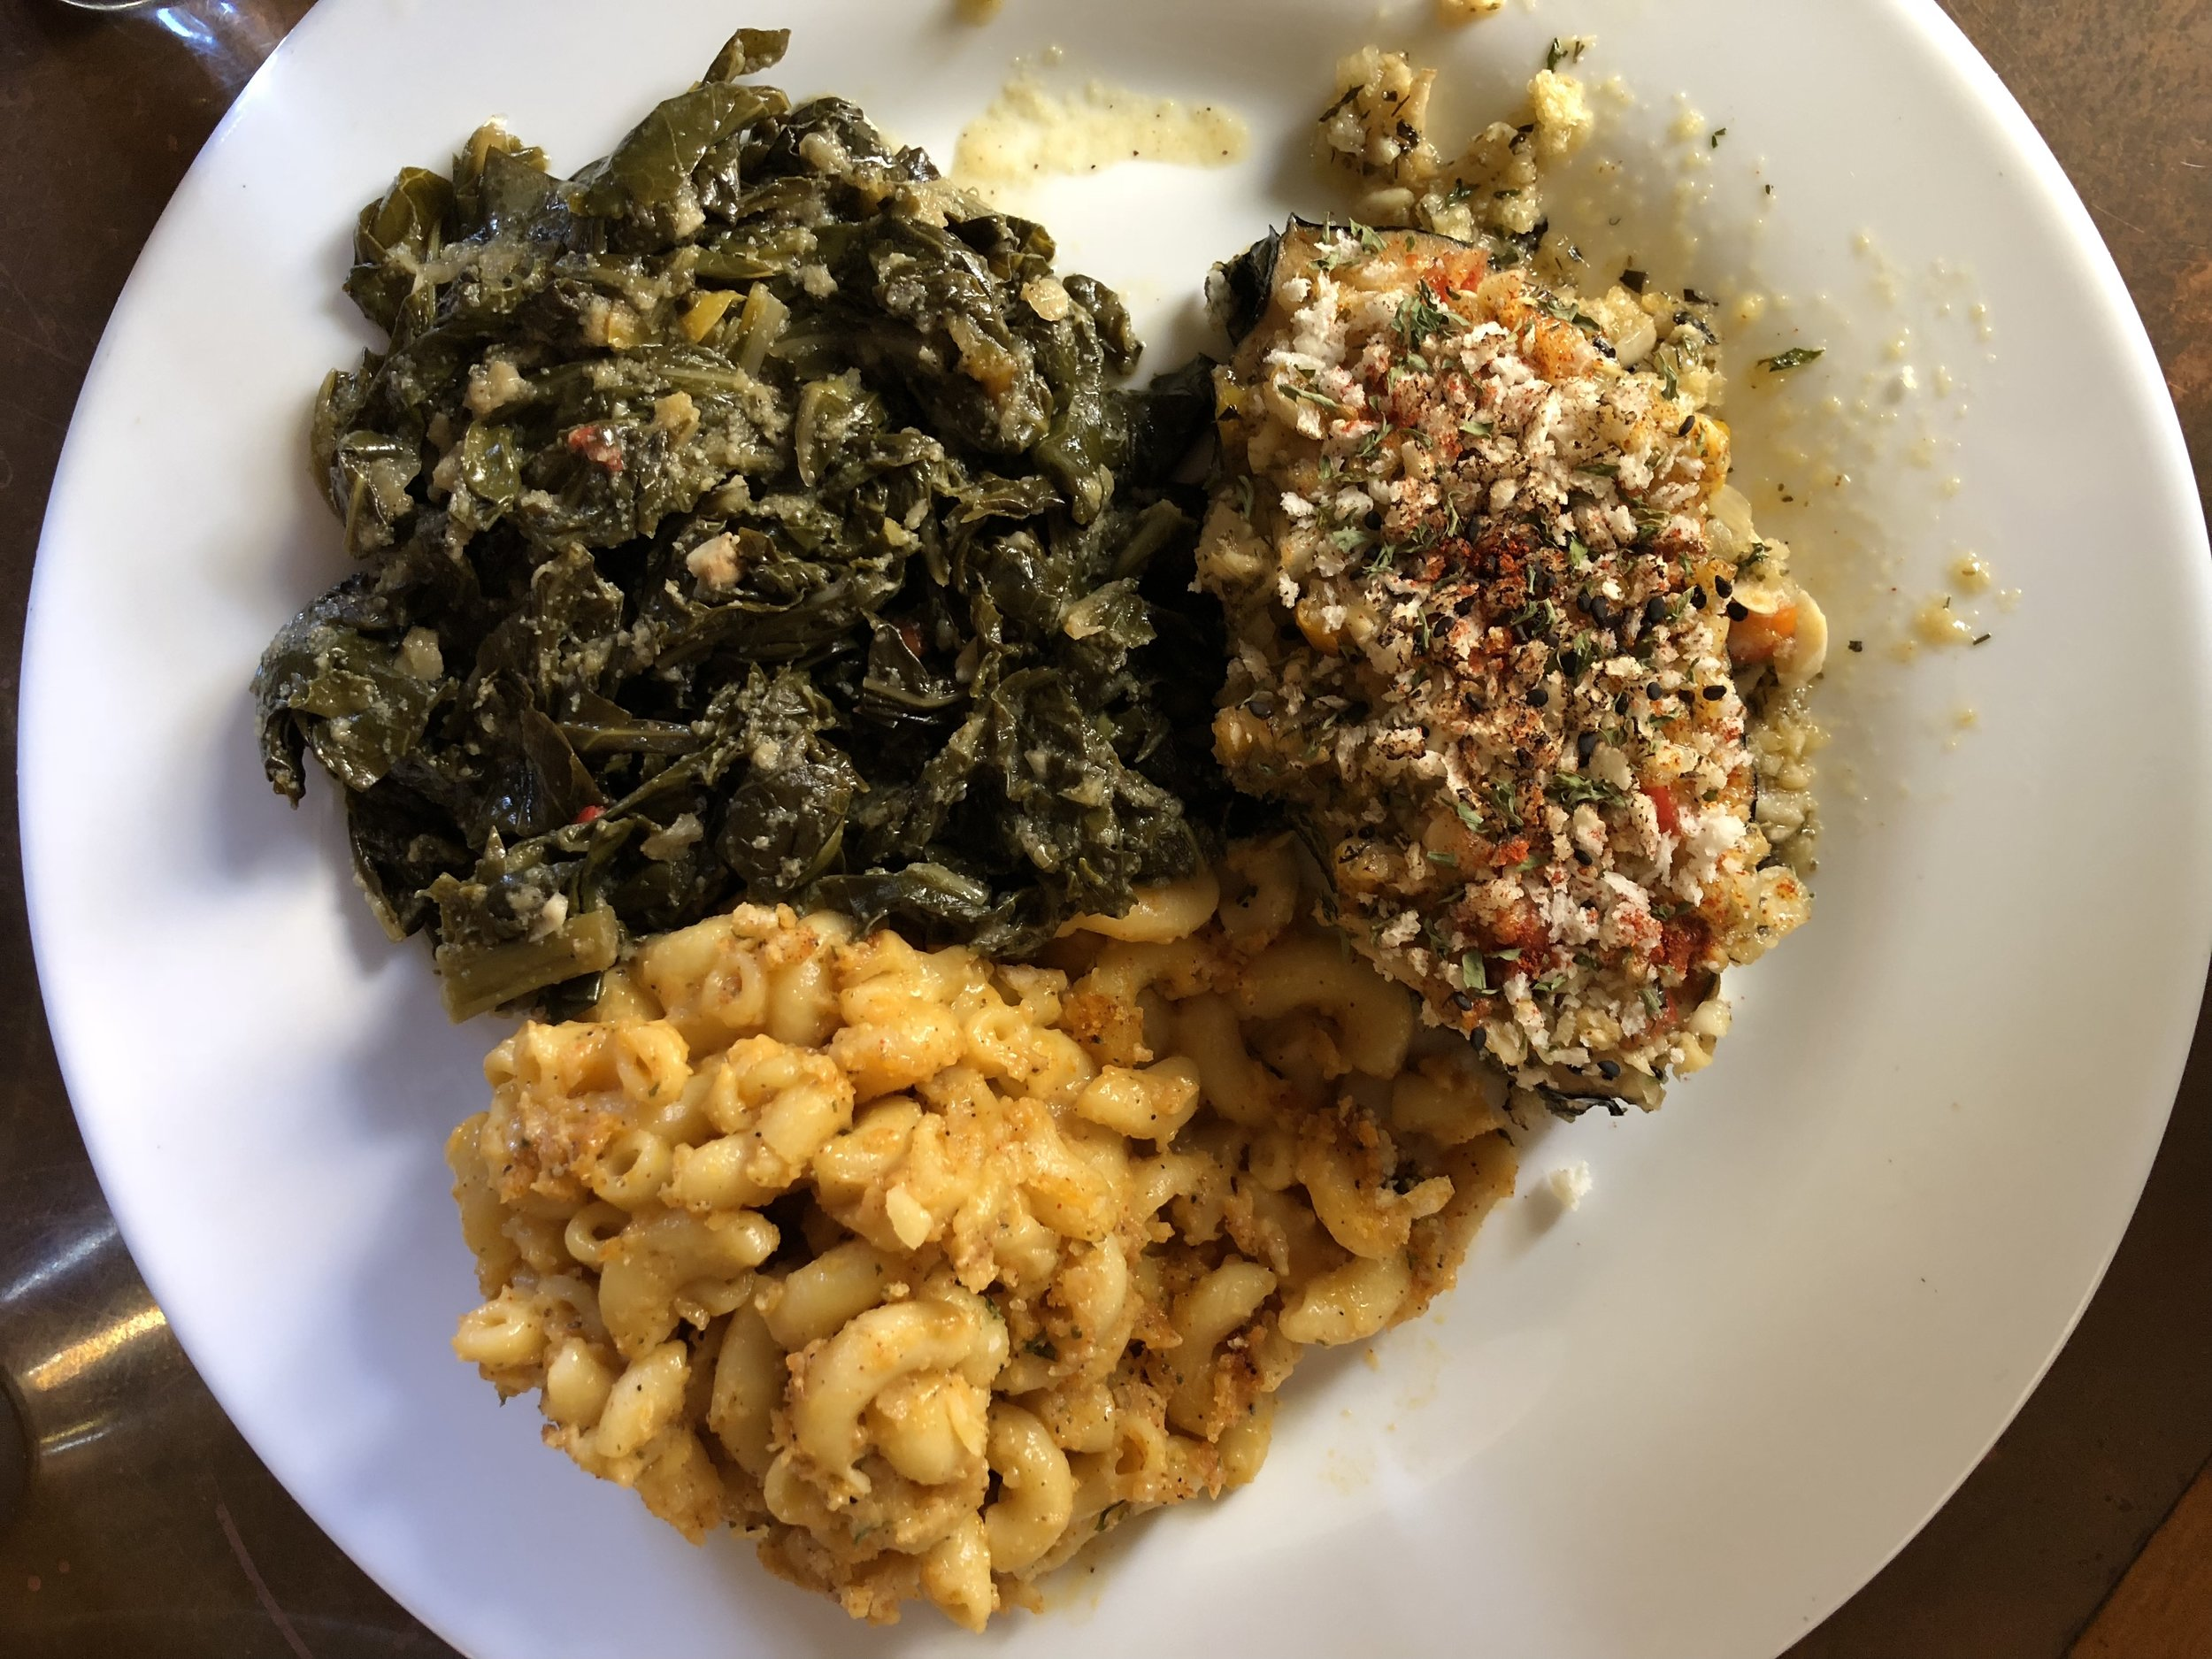 """The Lemon Crusted """"Fish"""" Steak w/sides of Baked Mac & """"Cheese"""" and Collard Greens at the Seasoned Vegan."""